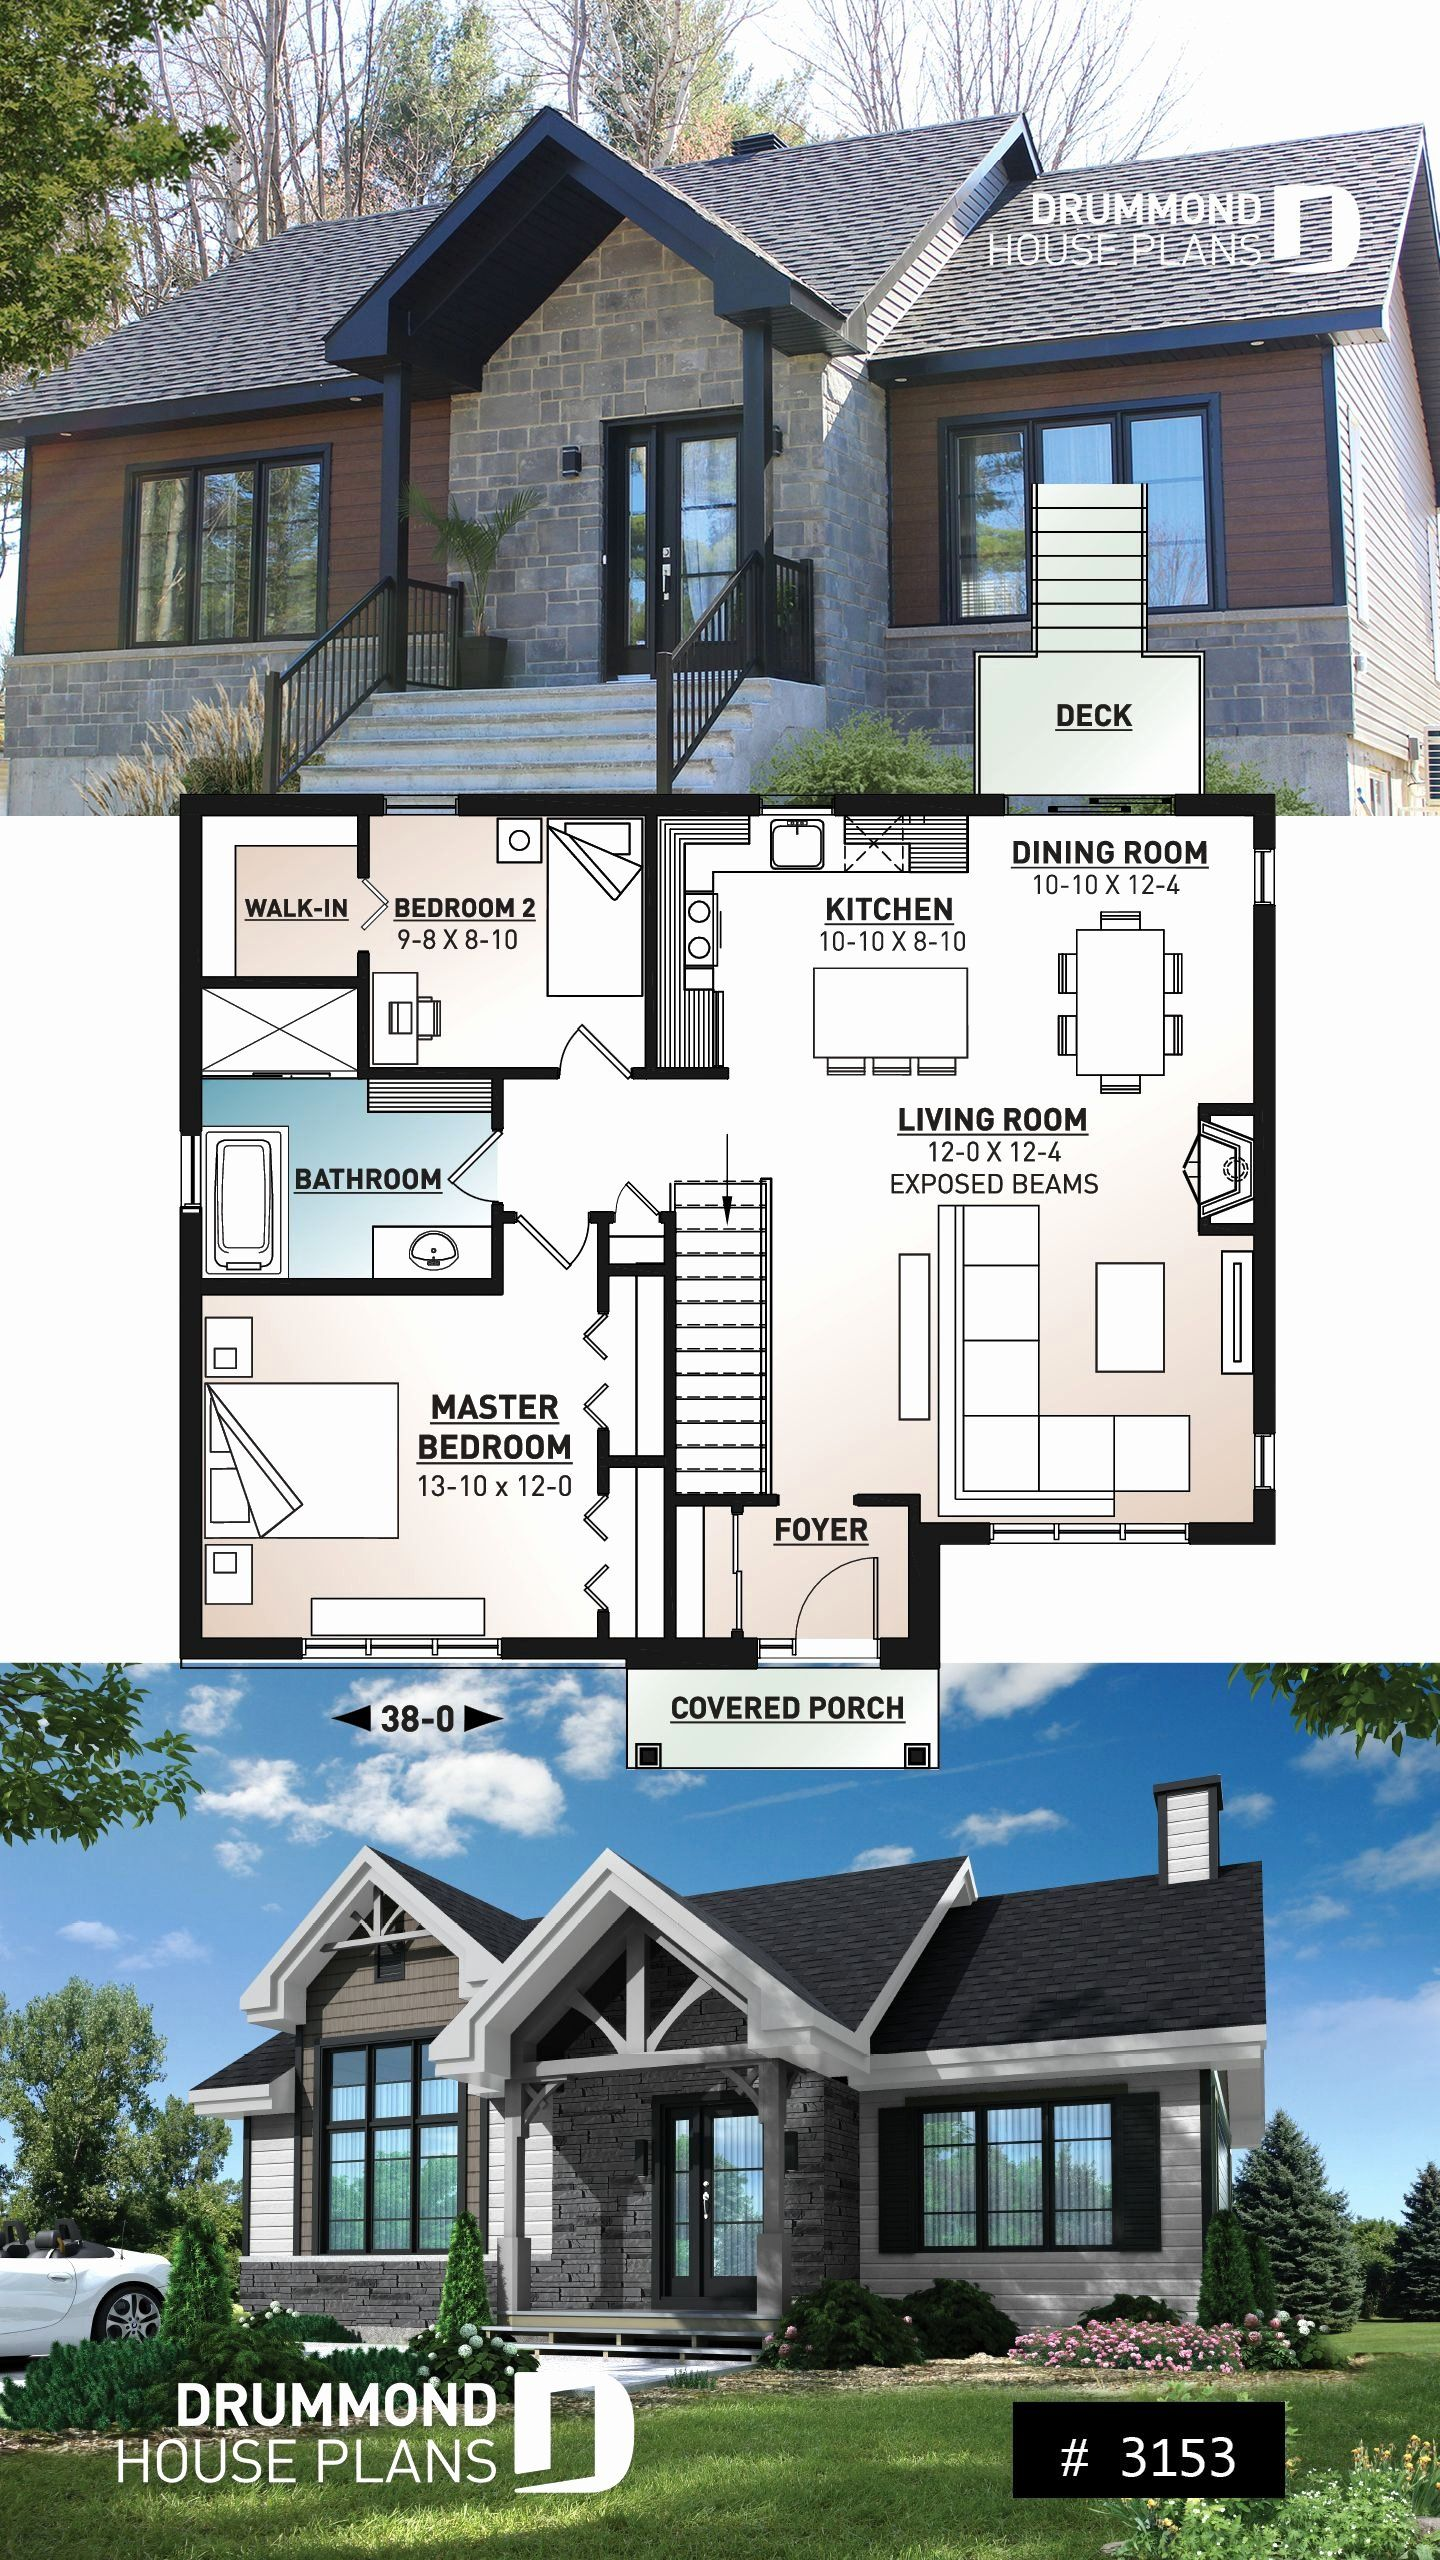 Tiny Ranch House Plans Fresh Modern Ranch House Plan 2 To 4 Bedrooms Low Cost In 2020 Small Modern Home Beach House Floor Plans Beach House Plans